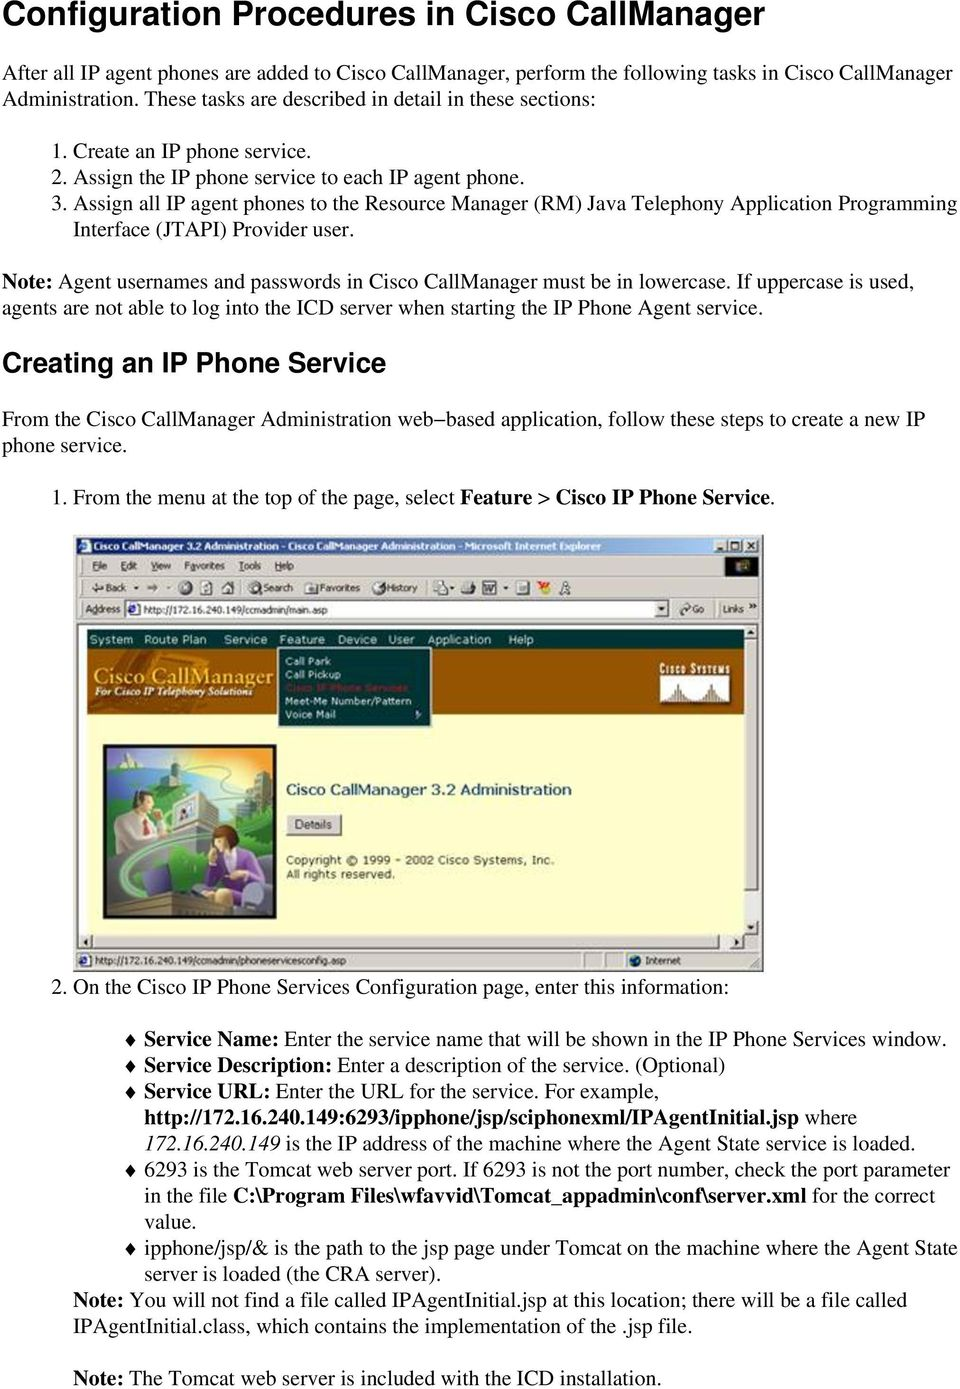 Configuring Cisco CallManager IP Phones to Work With IP